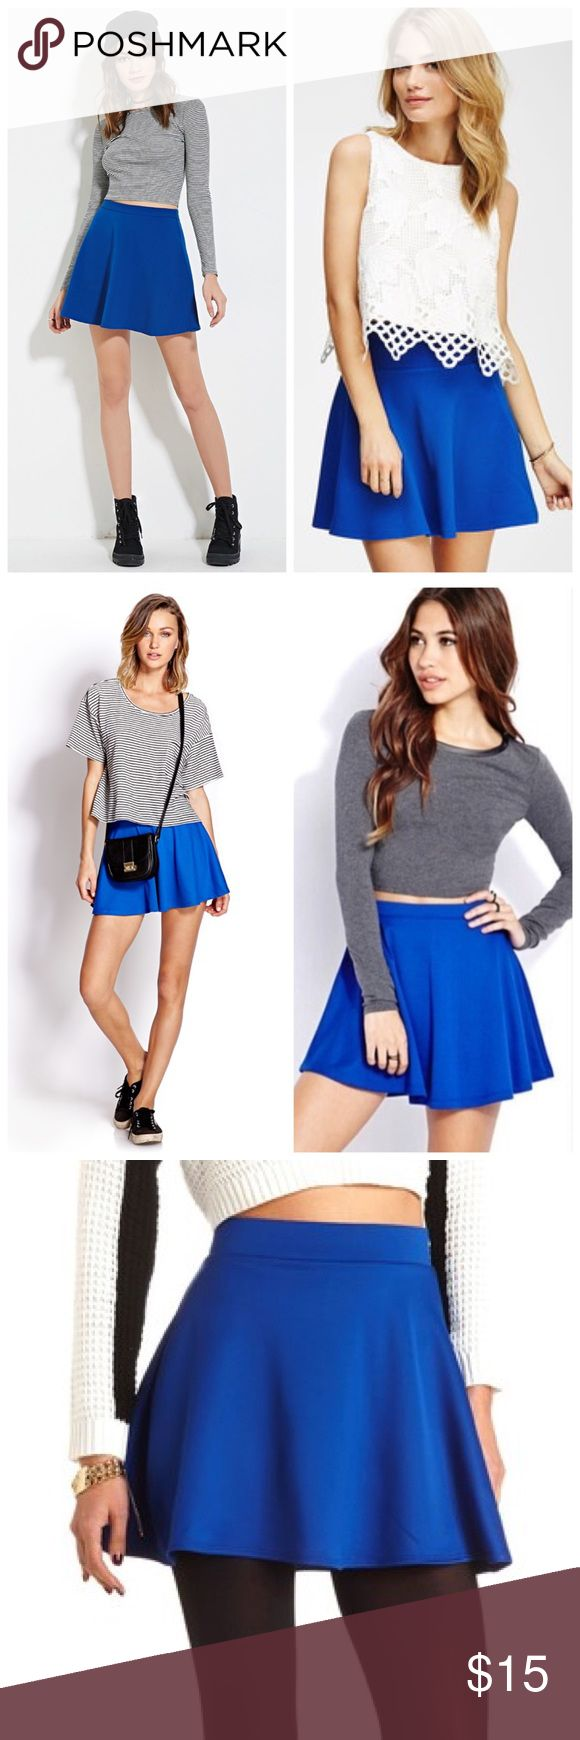 ROYAL BLUE SKATER SKIRT Pretty royal blue skater skirt. New with tags. Fits size M/L. MATERIAL: 96 Polyester 4% spandex. Skirts Circle & Skater